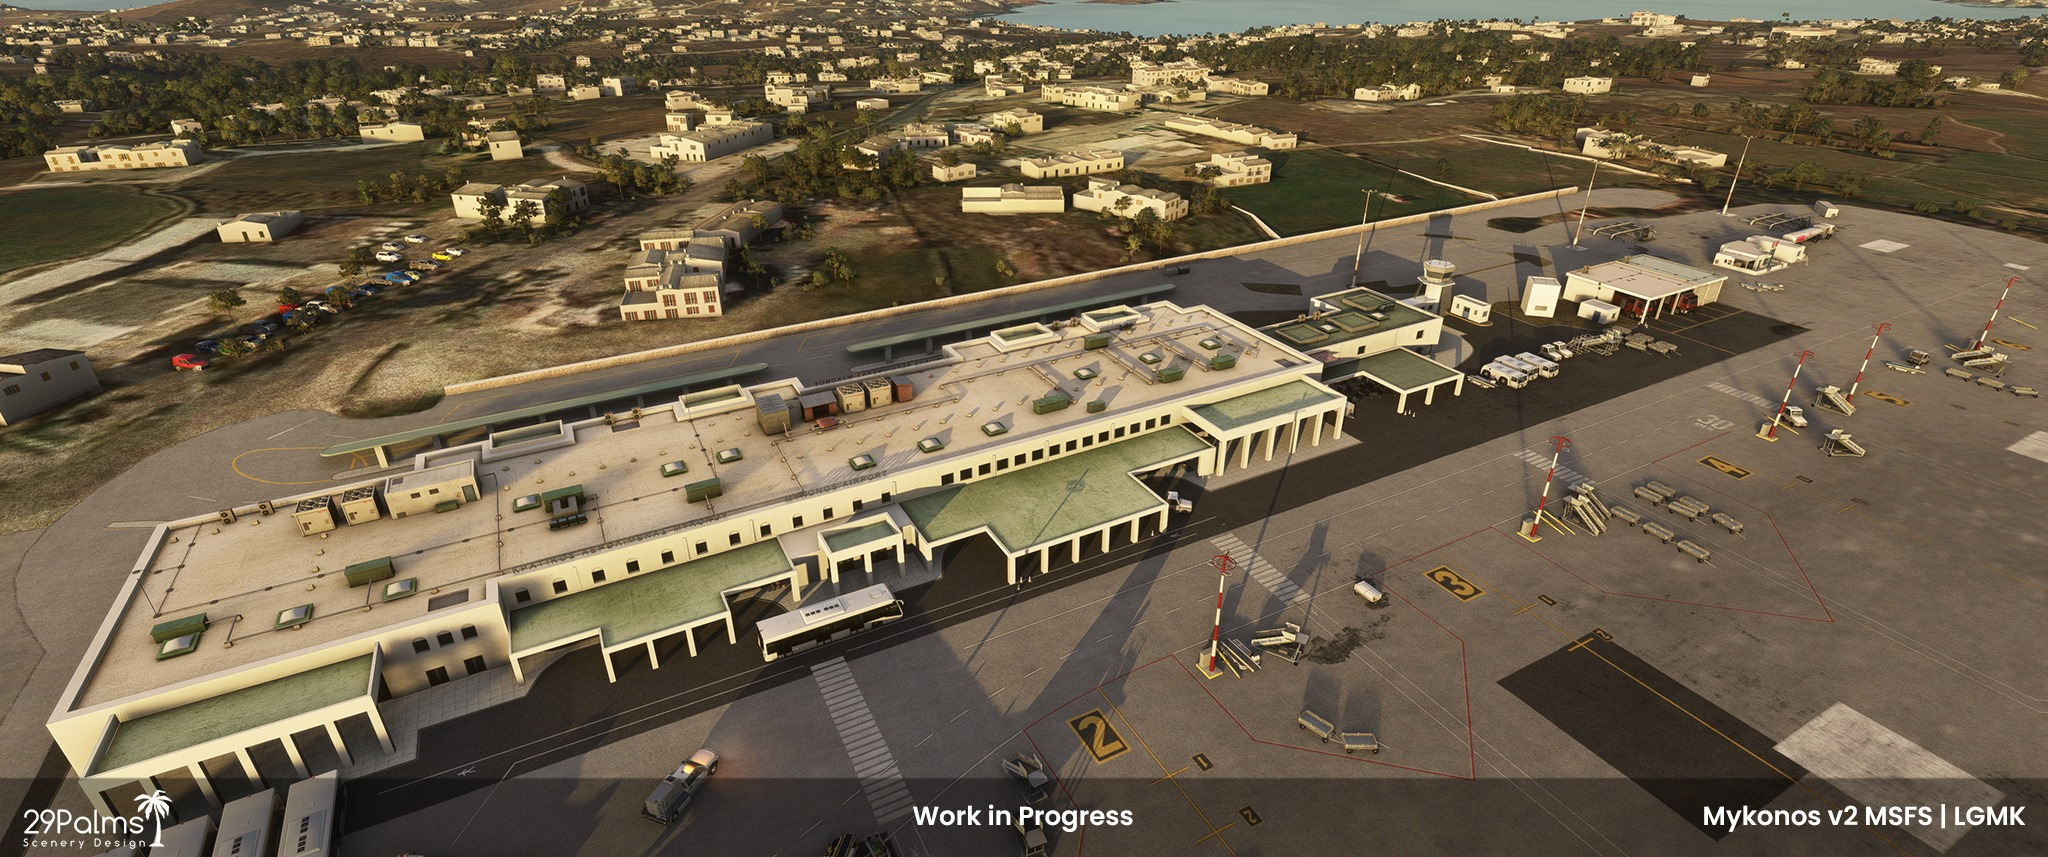 29Palms Scenery Design – Mykonos LGMK Project News